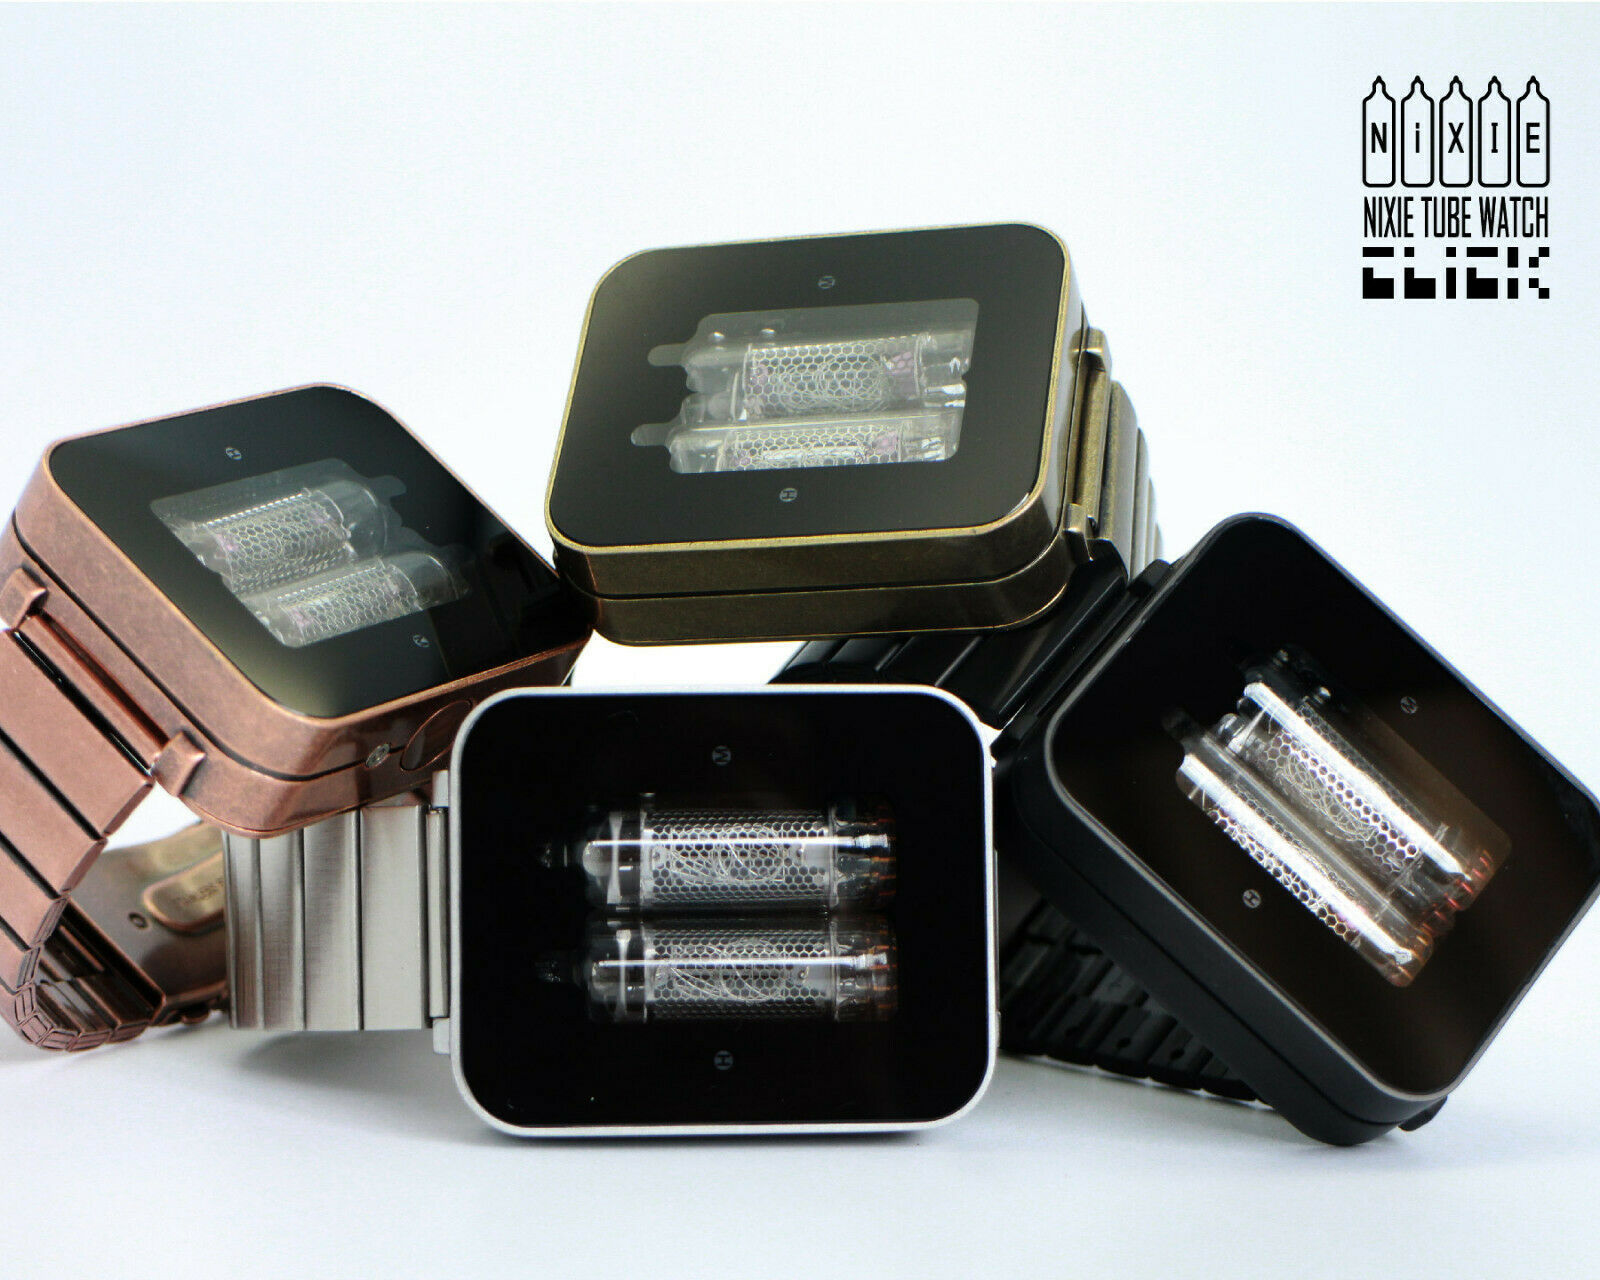 Nixie tube watch geek vintage collectibles rare russia tubes C.C.C.P. made tubes image 3